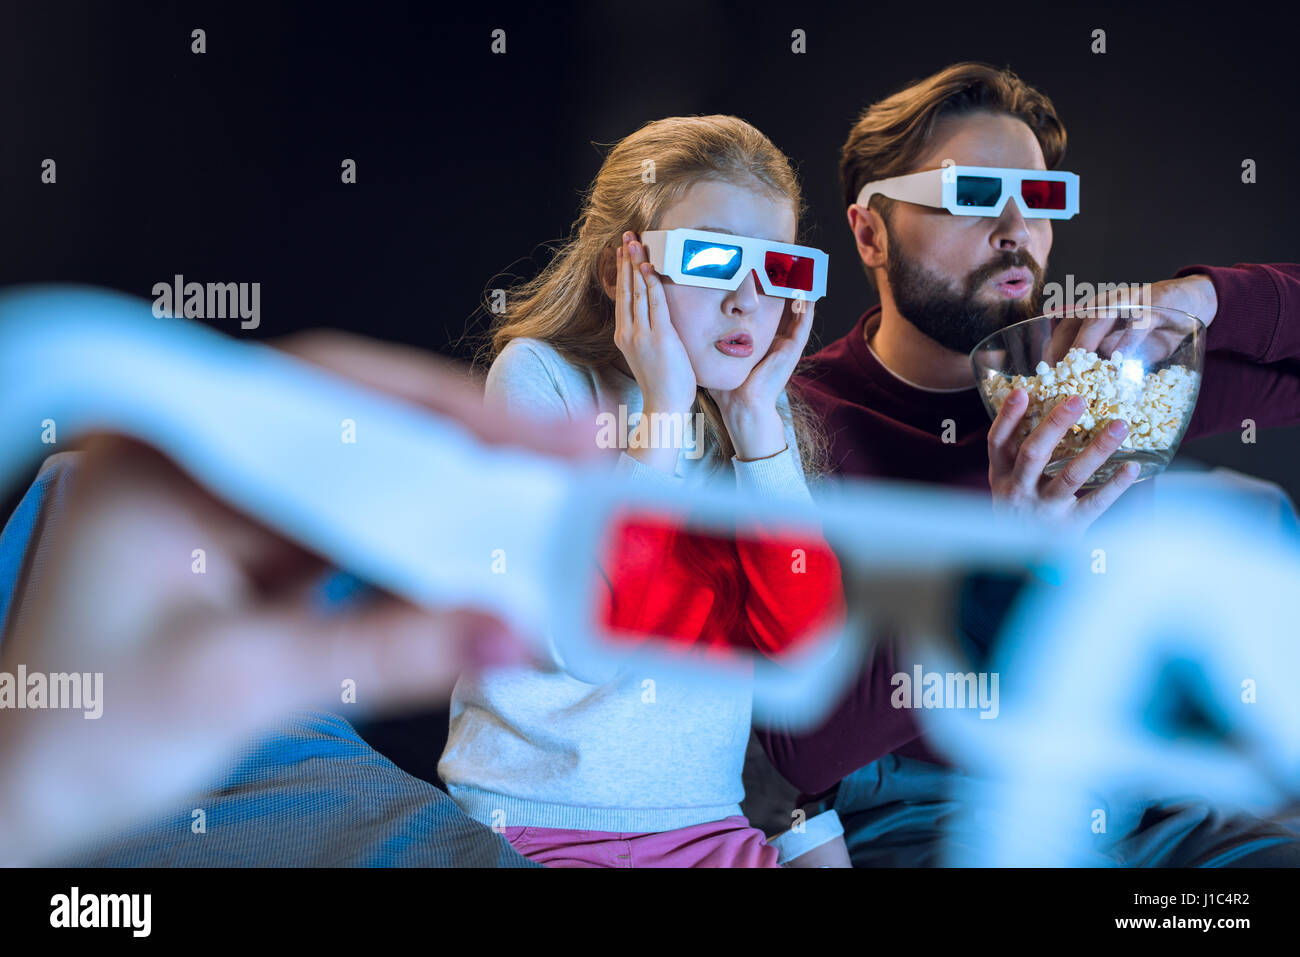 Shocked father and daughter in 3d glasses watching movie and eating popcorn - Stock Image